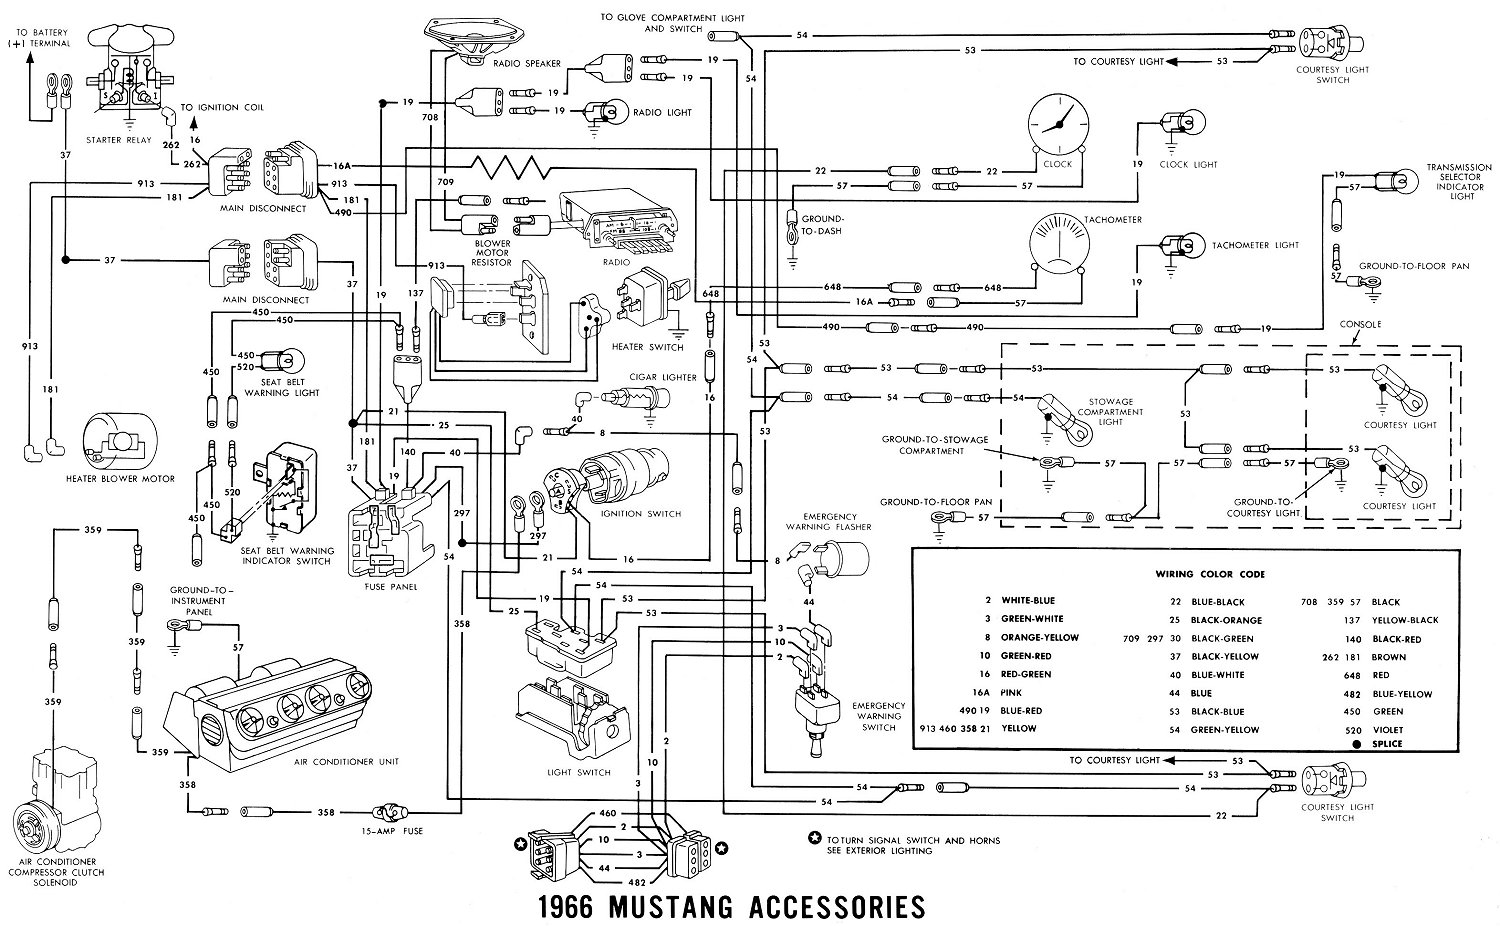 ford mustang diagram wiring diagram data rh 2 18 14 reisen fuer meister de